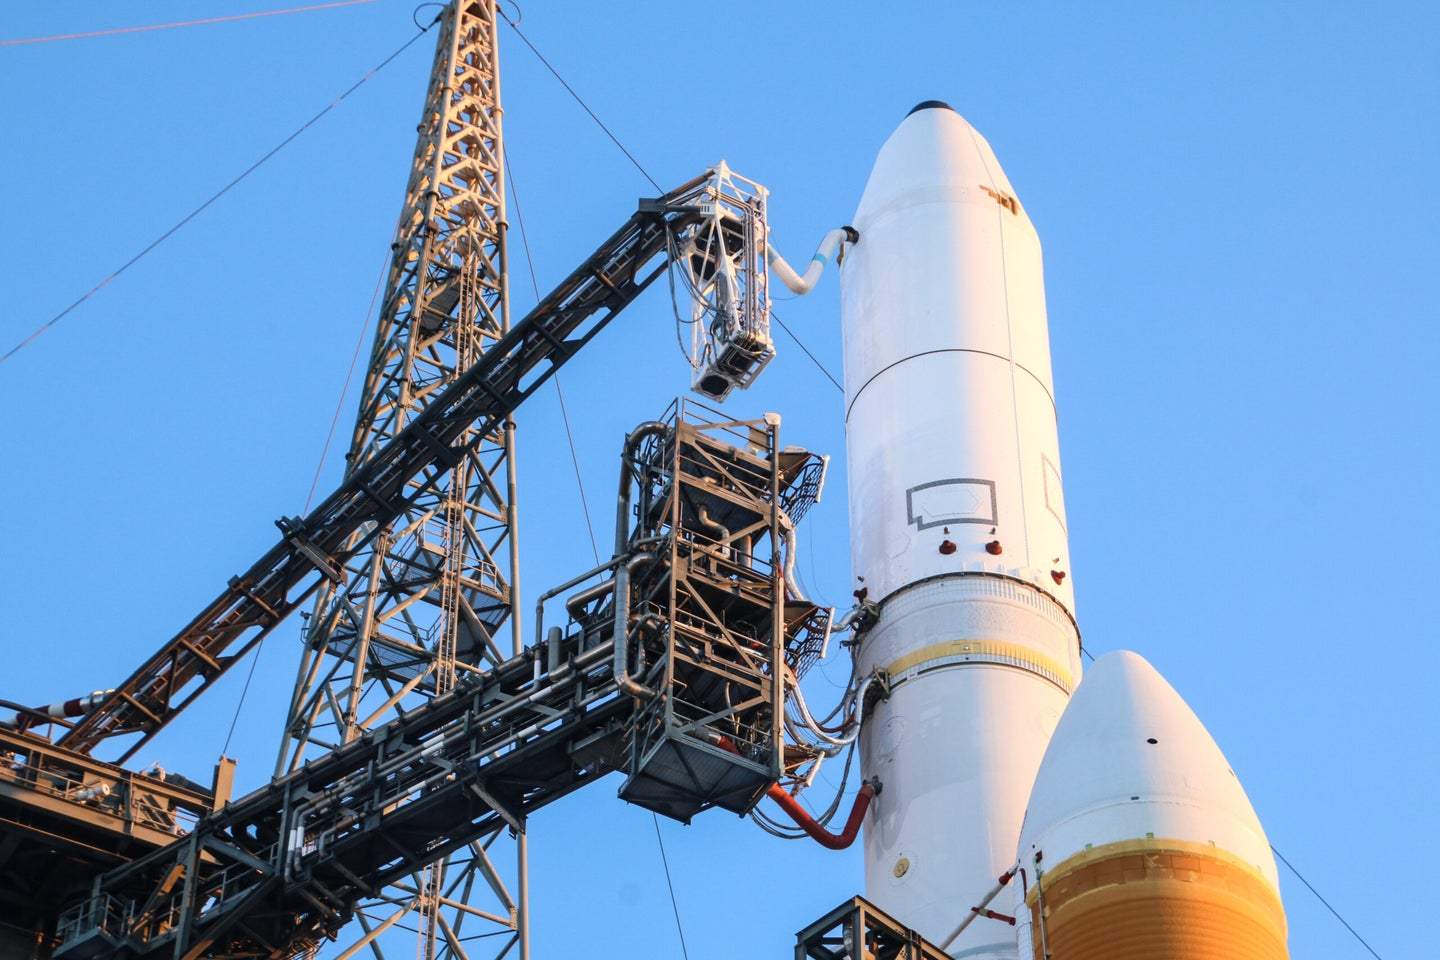 Delta IV Heavy Rocket Waiting on a launch pad In Daylight